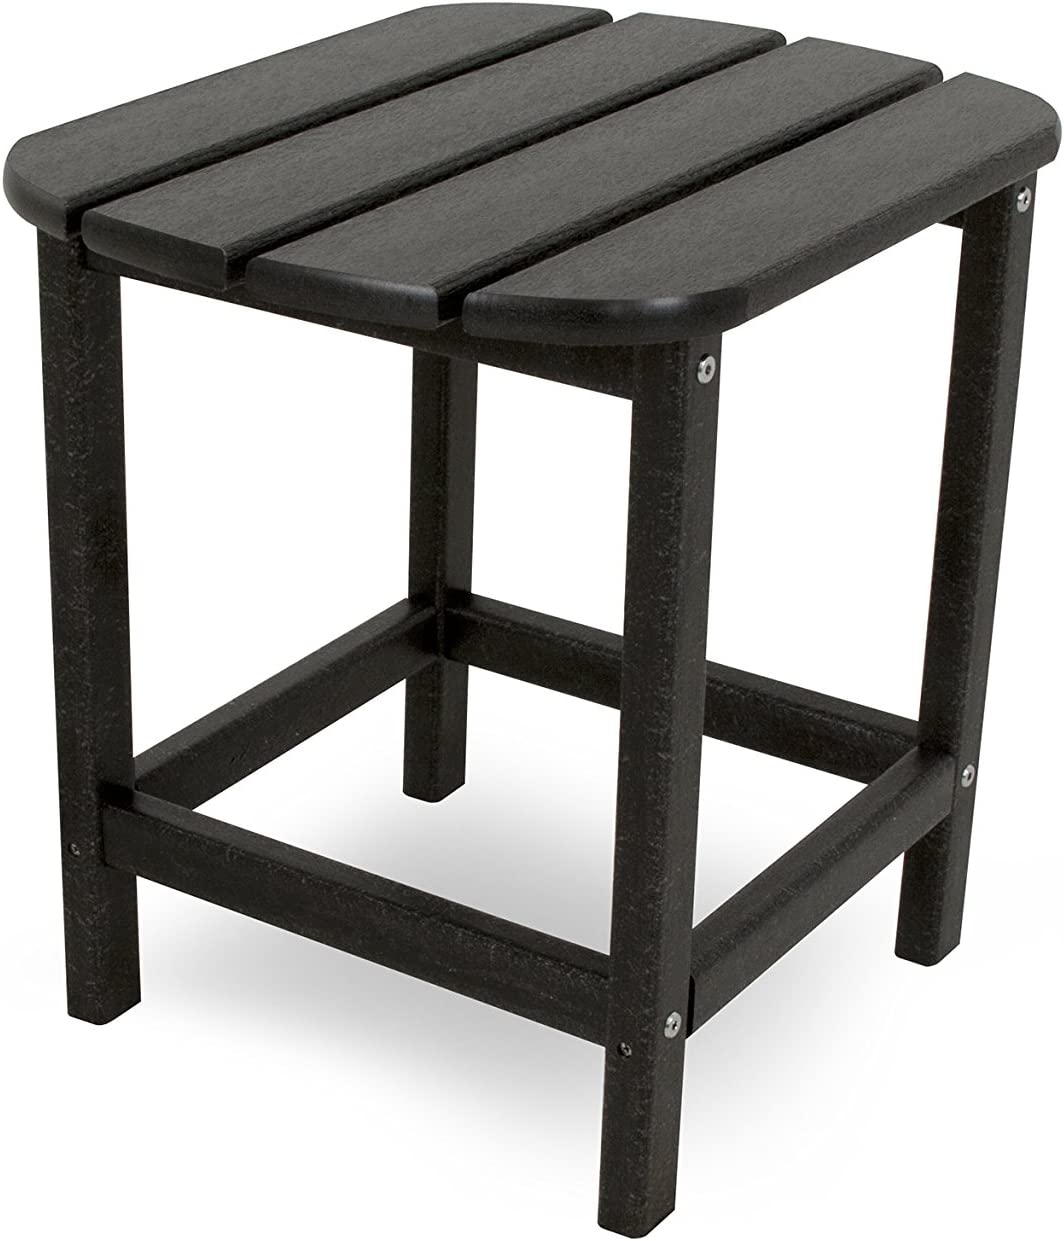 "POLYWOOD SBT18BL South Beach 18"" Outdoor Side Table, Black"